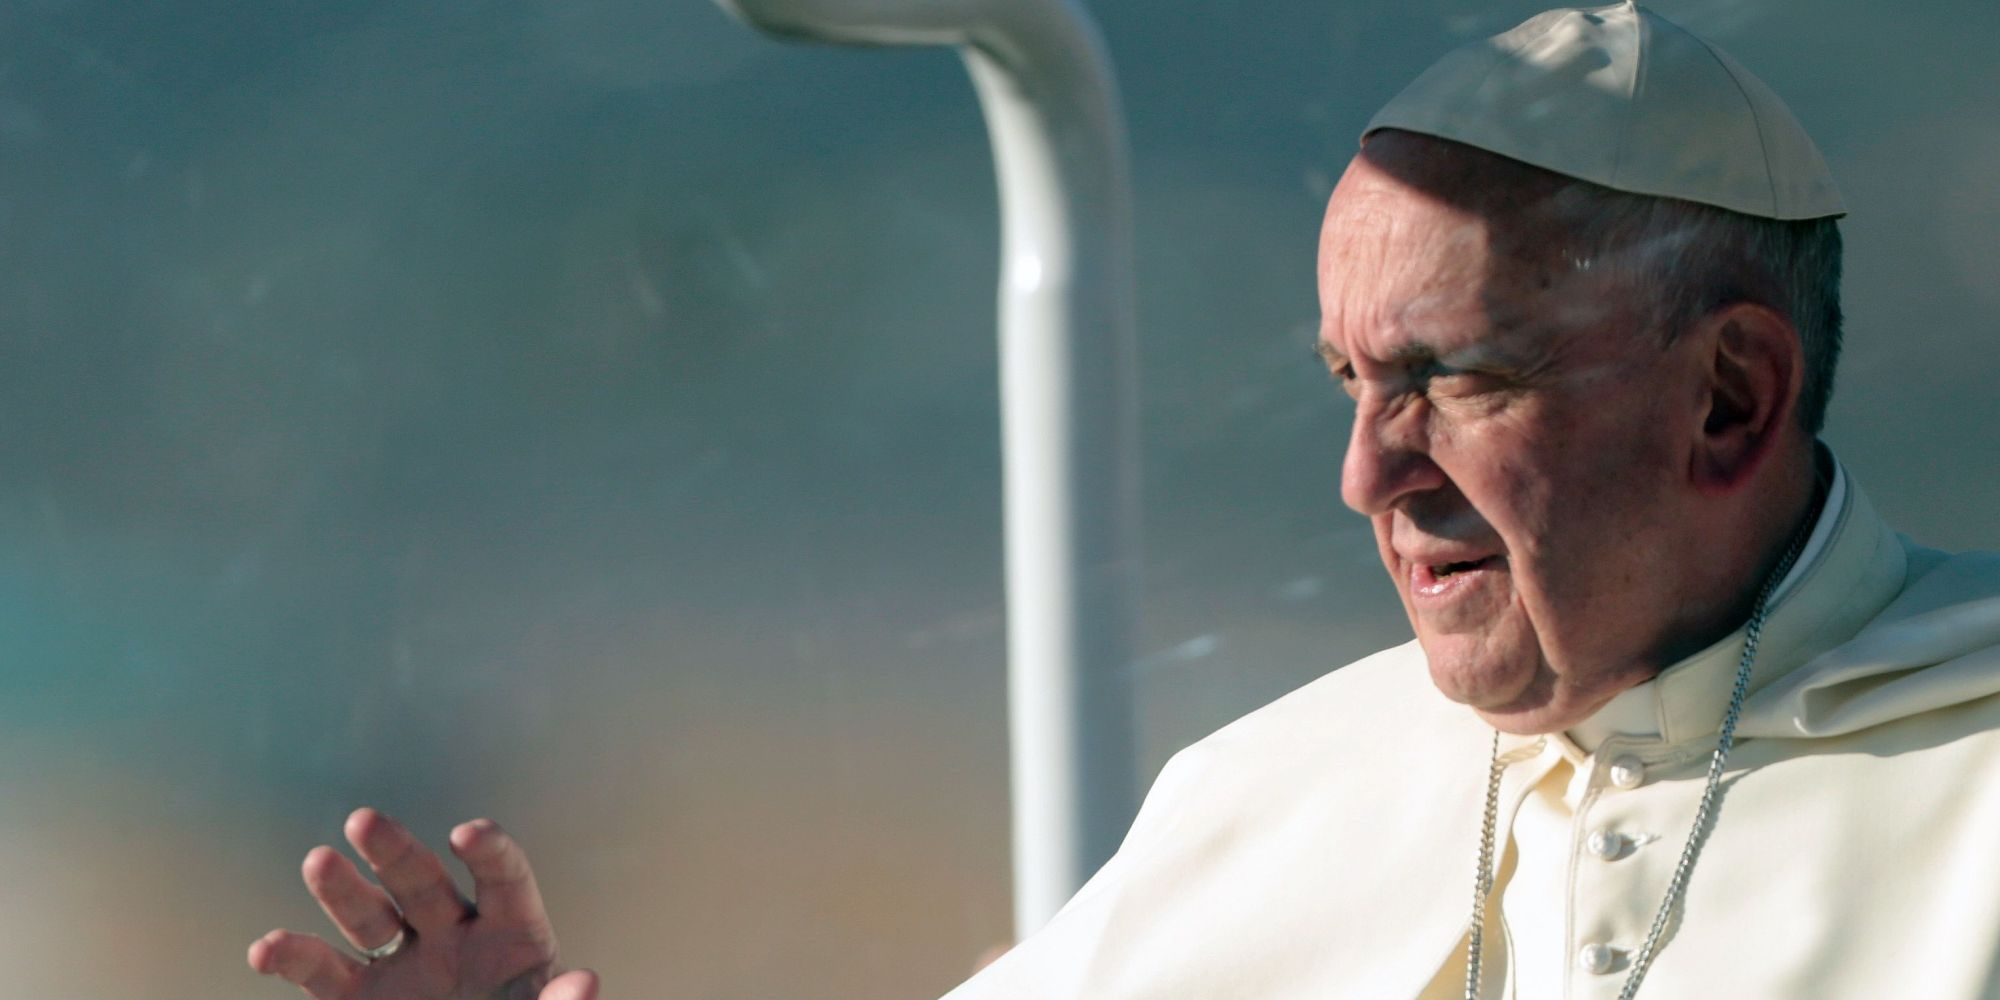 Why does the catholic church forbid using birth control even to poor families?